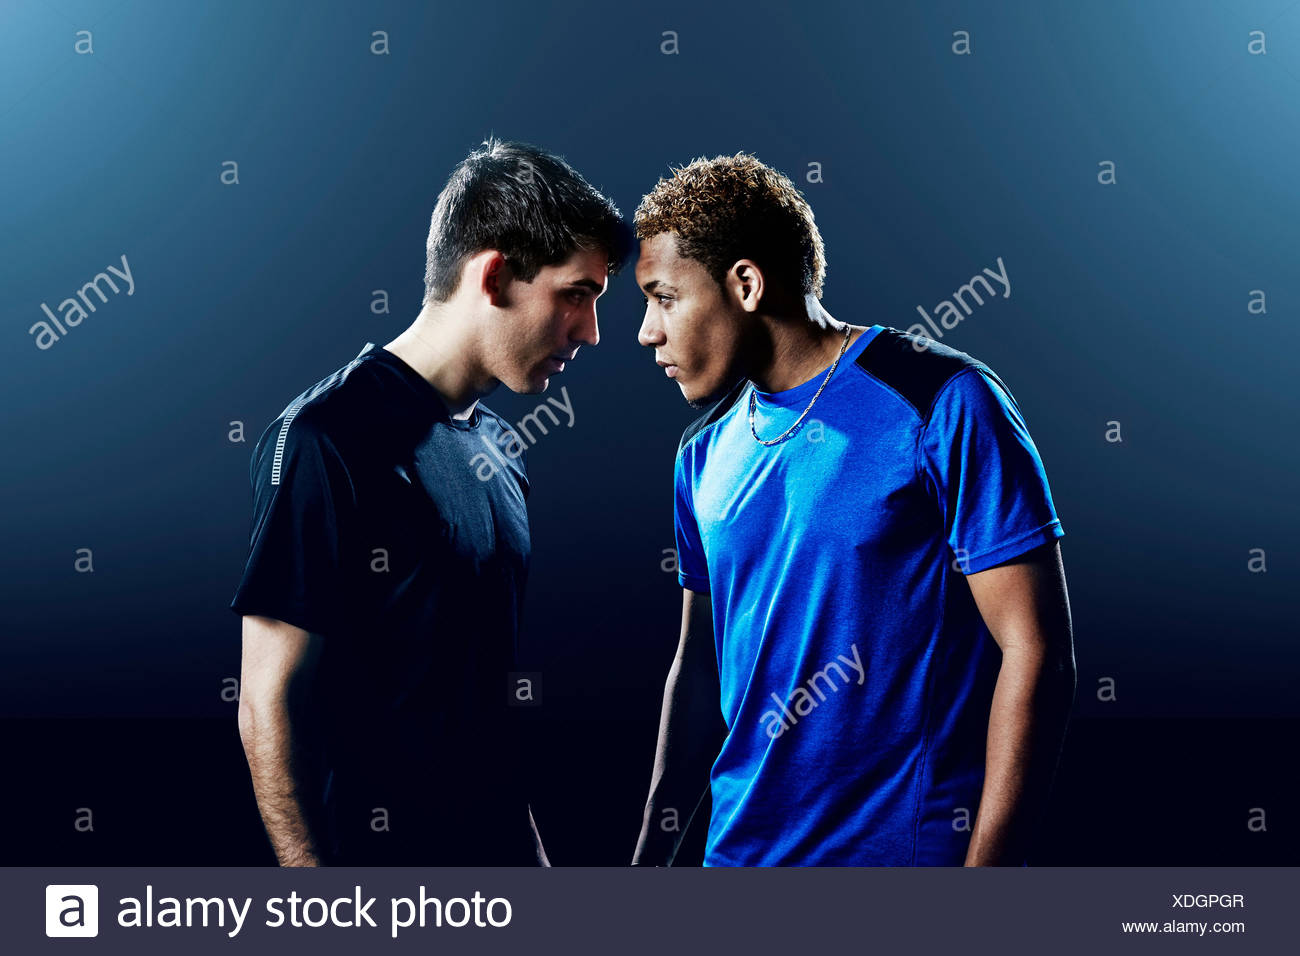 Portrait of two male soccer players head to head - Stock Image